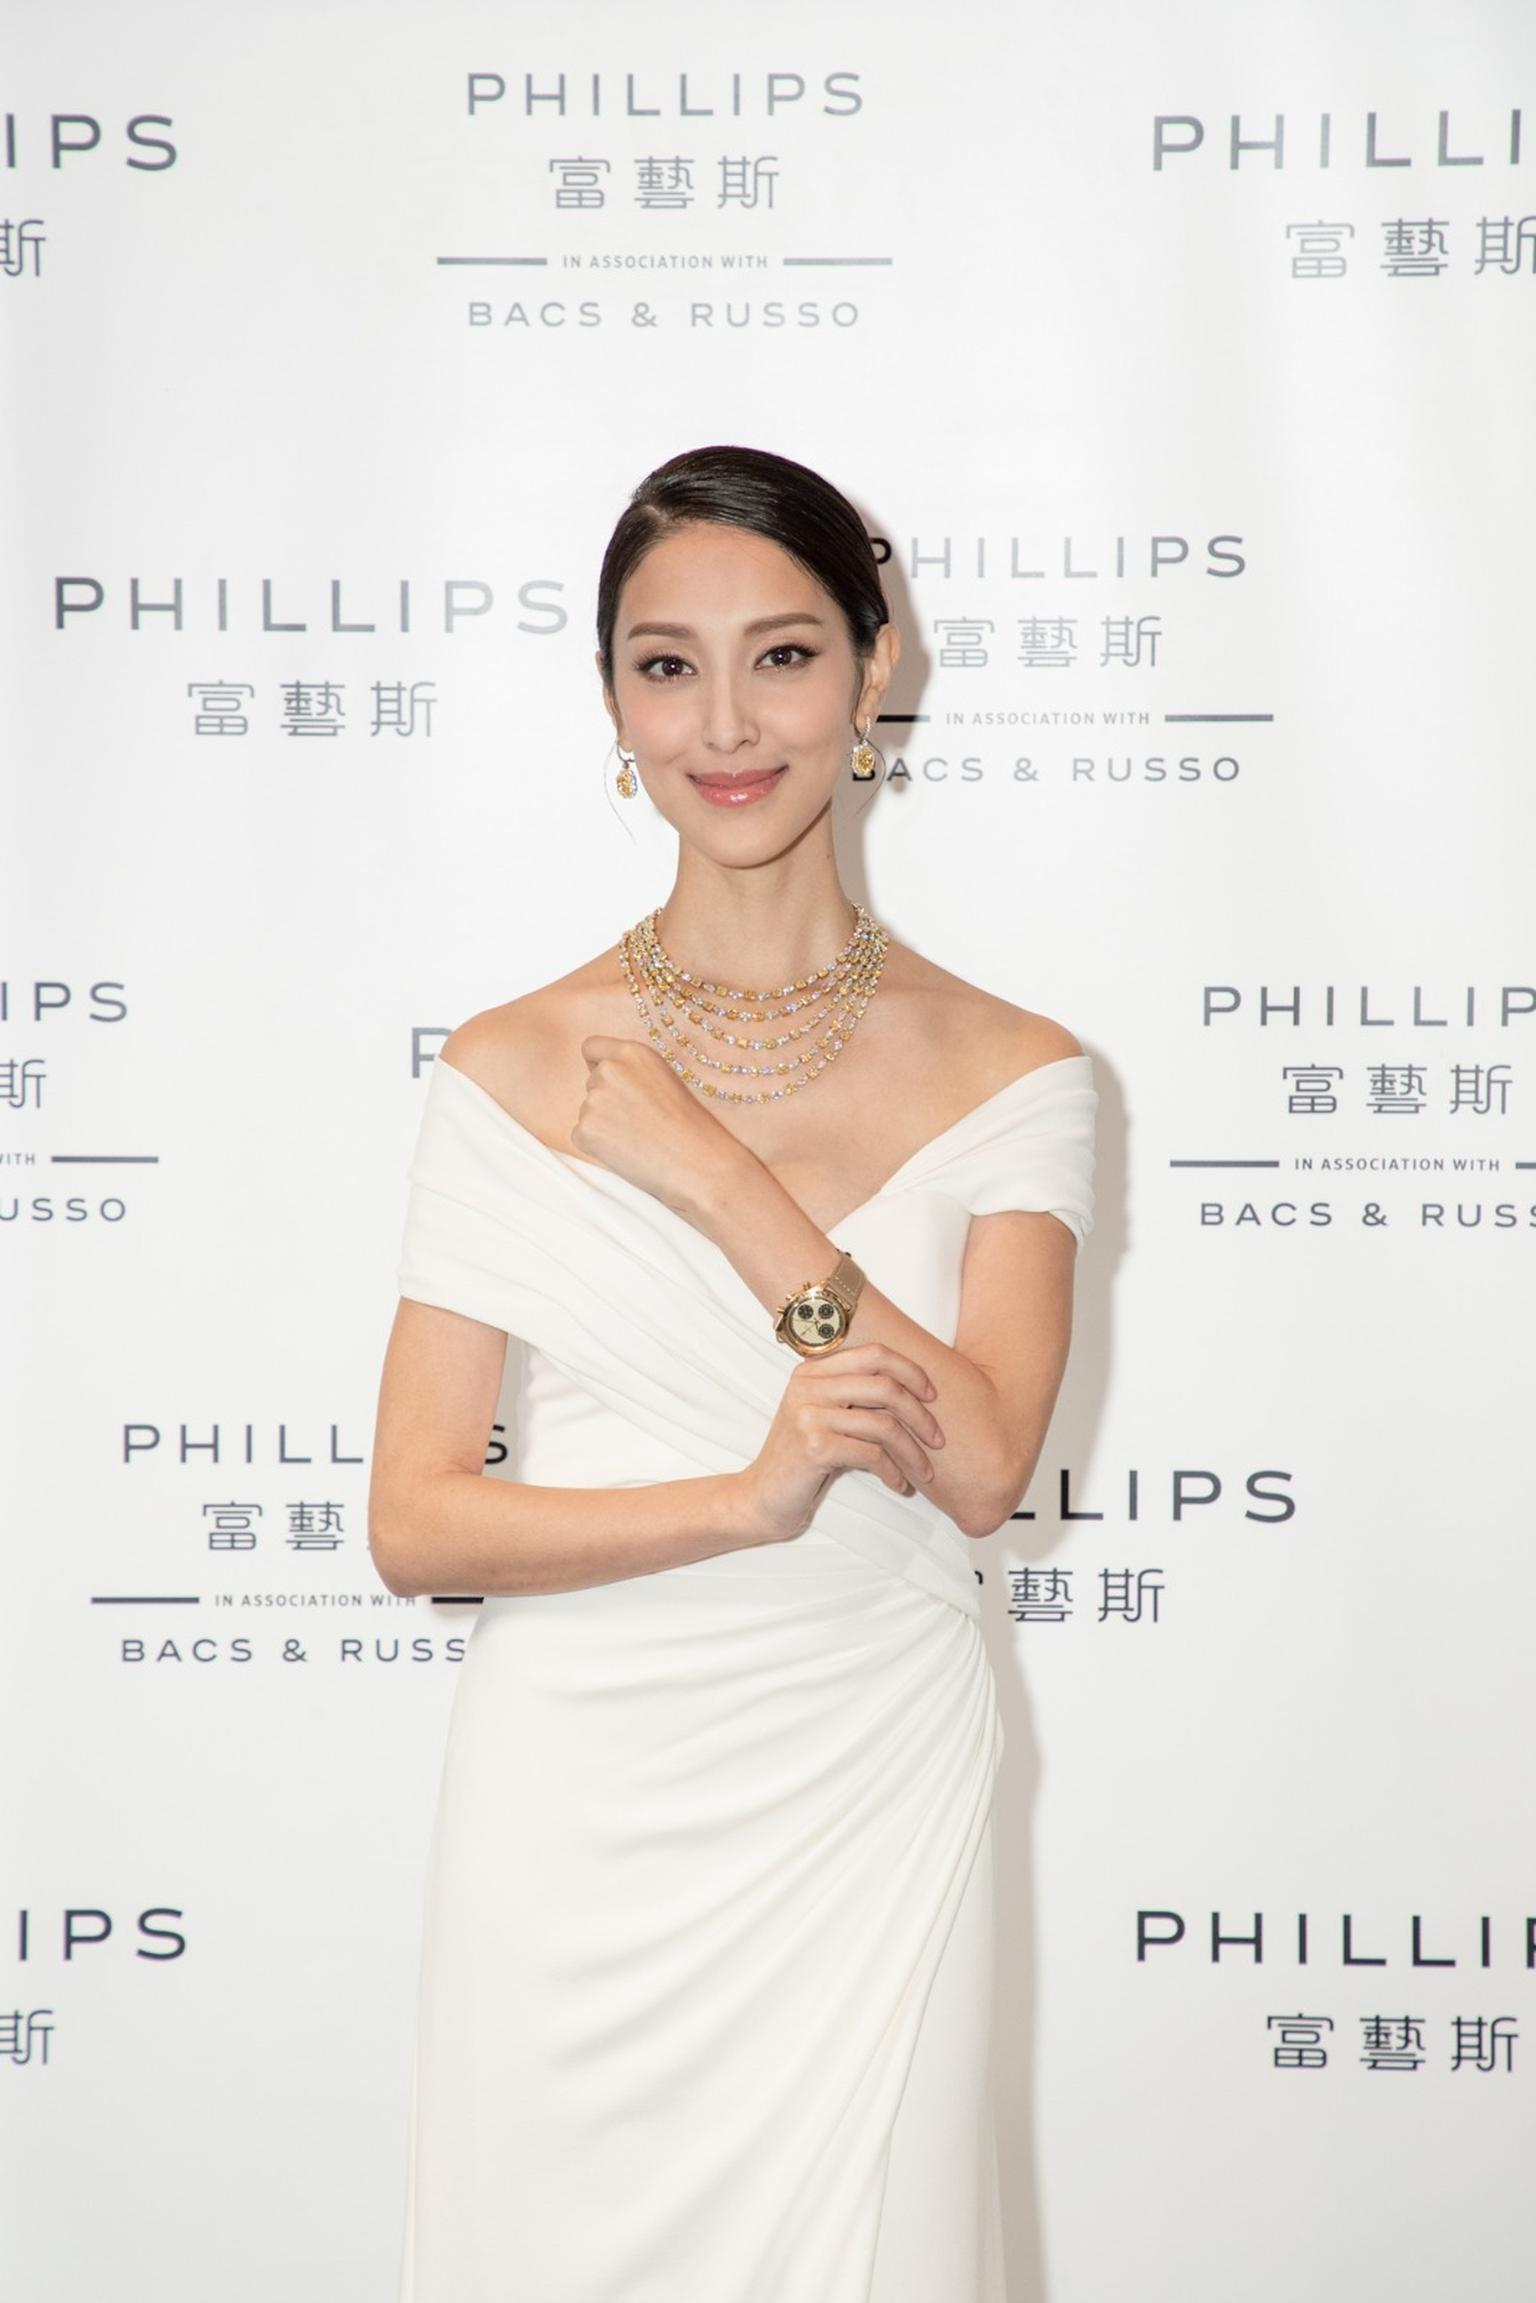 Lot 591 and Lot 590 for Phillips Auction Grace Chan